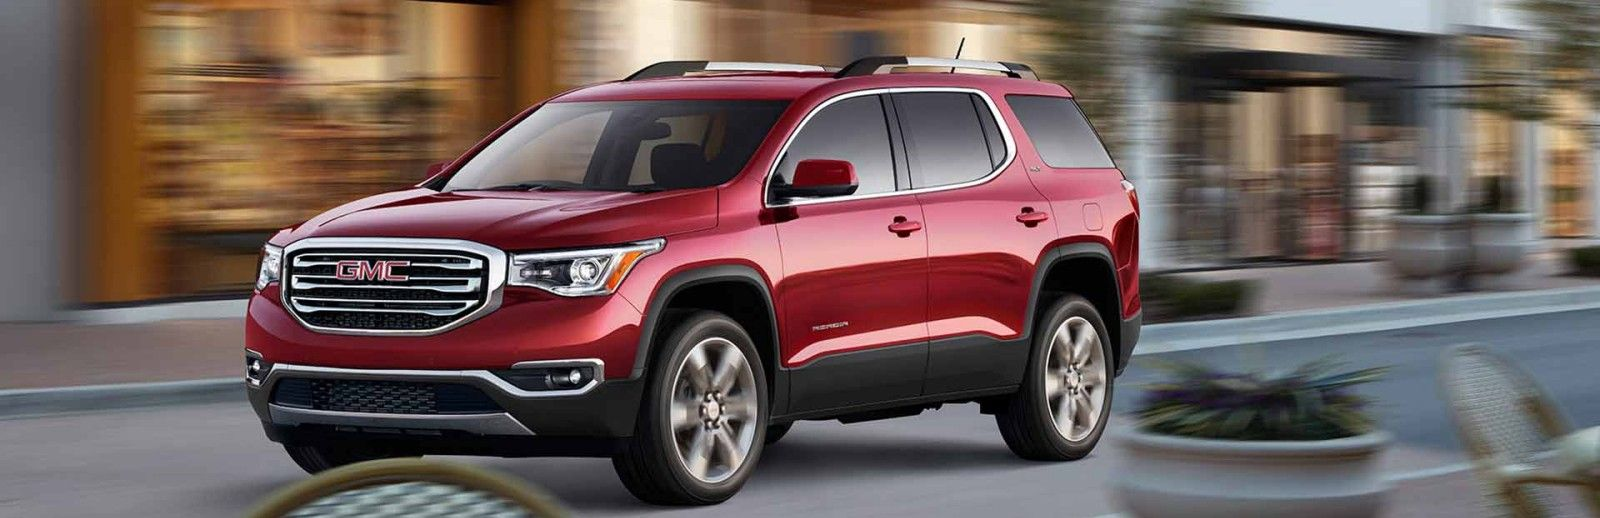 2017 gmc acadia for sale in castle rock, co - medved castle rock